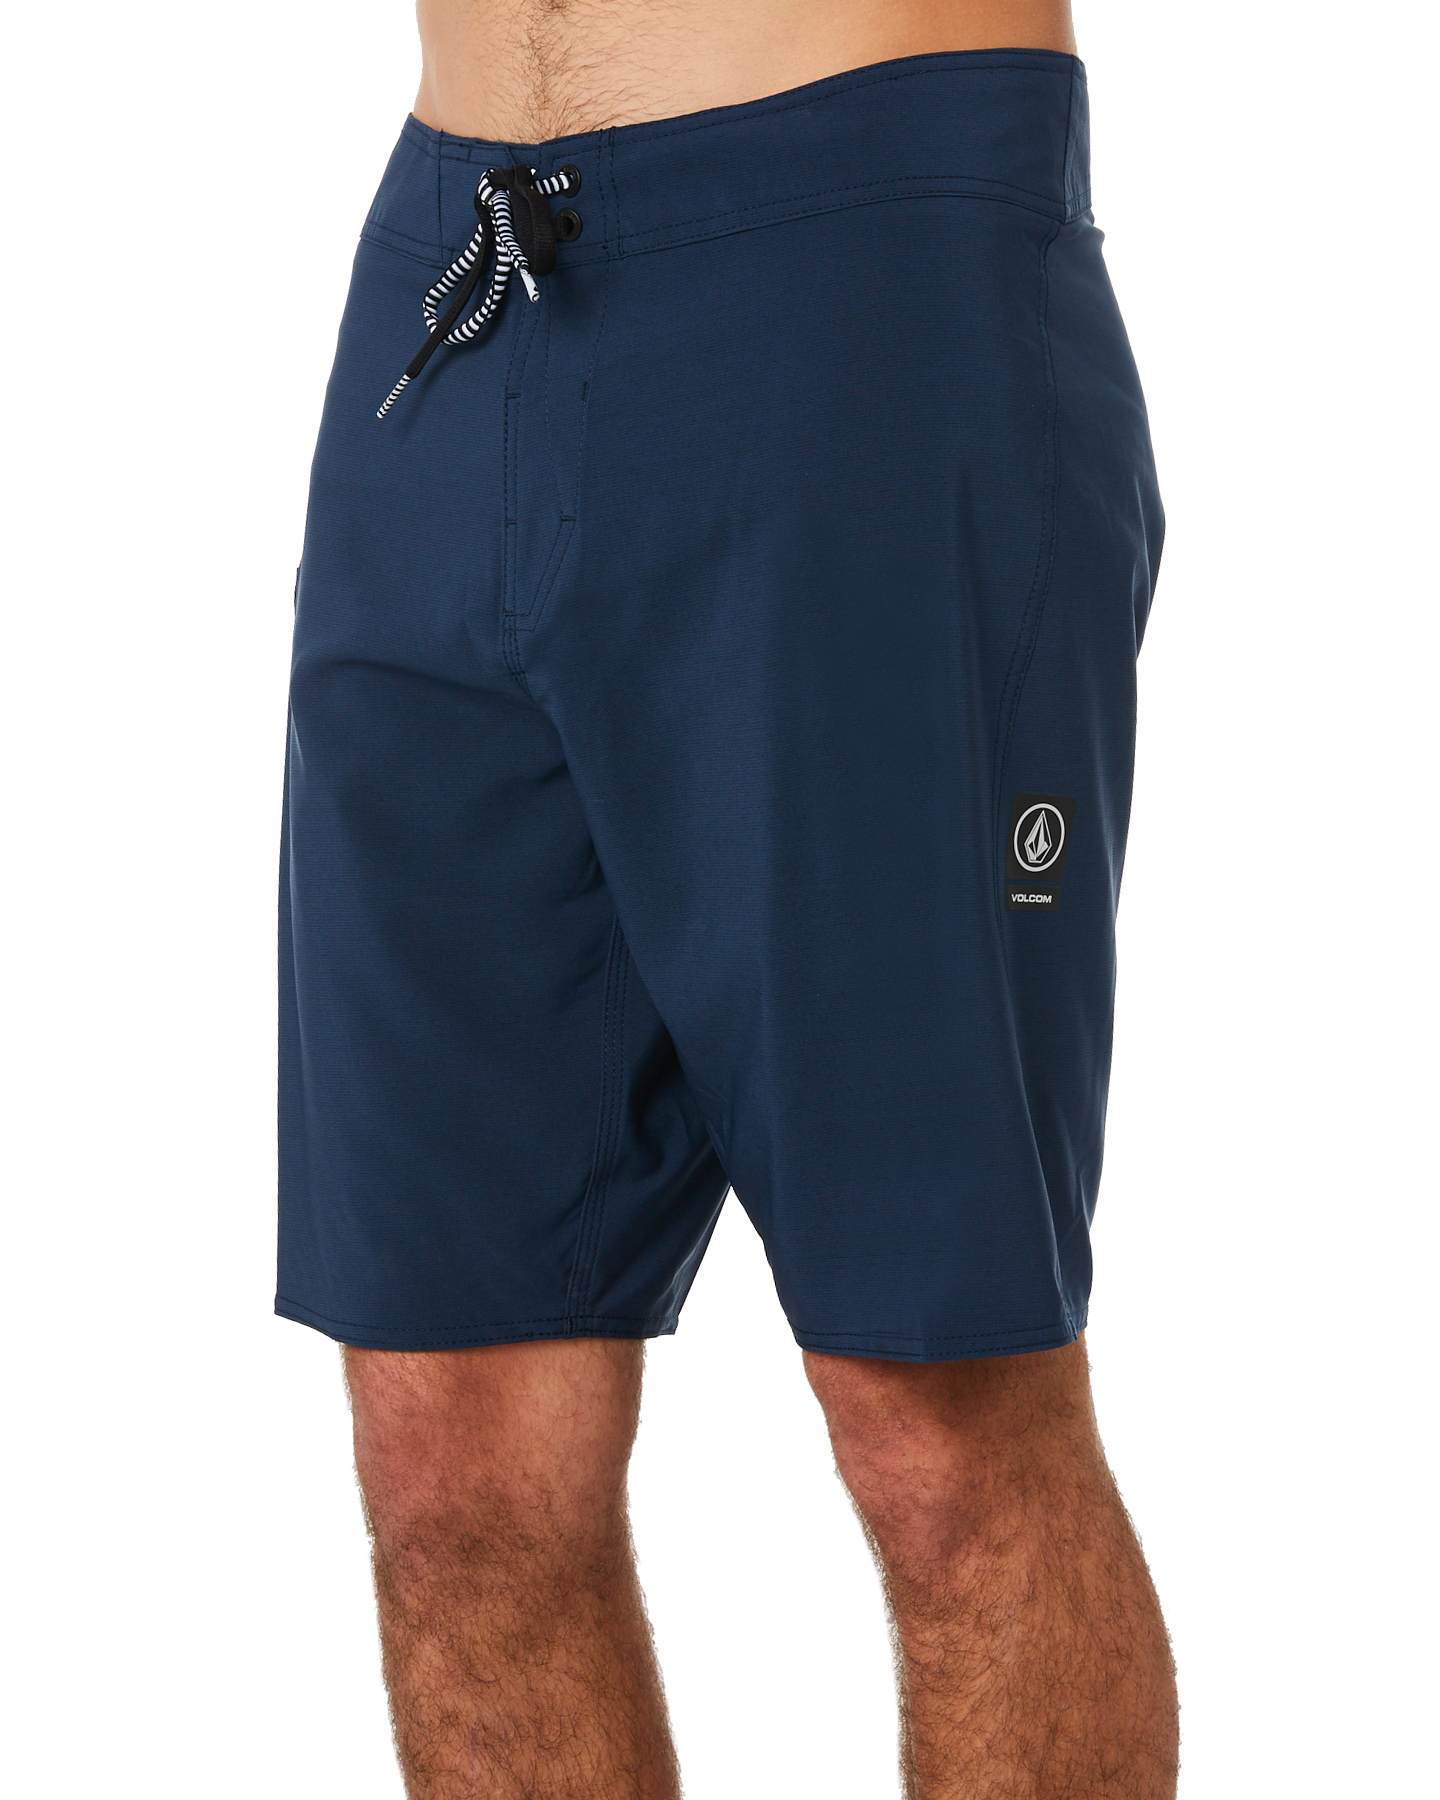 0bb7823f0c New Volcom Men's Lido Solid Mod 20 Mens Boardshort Fitted Elastane ...